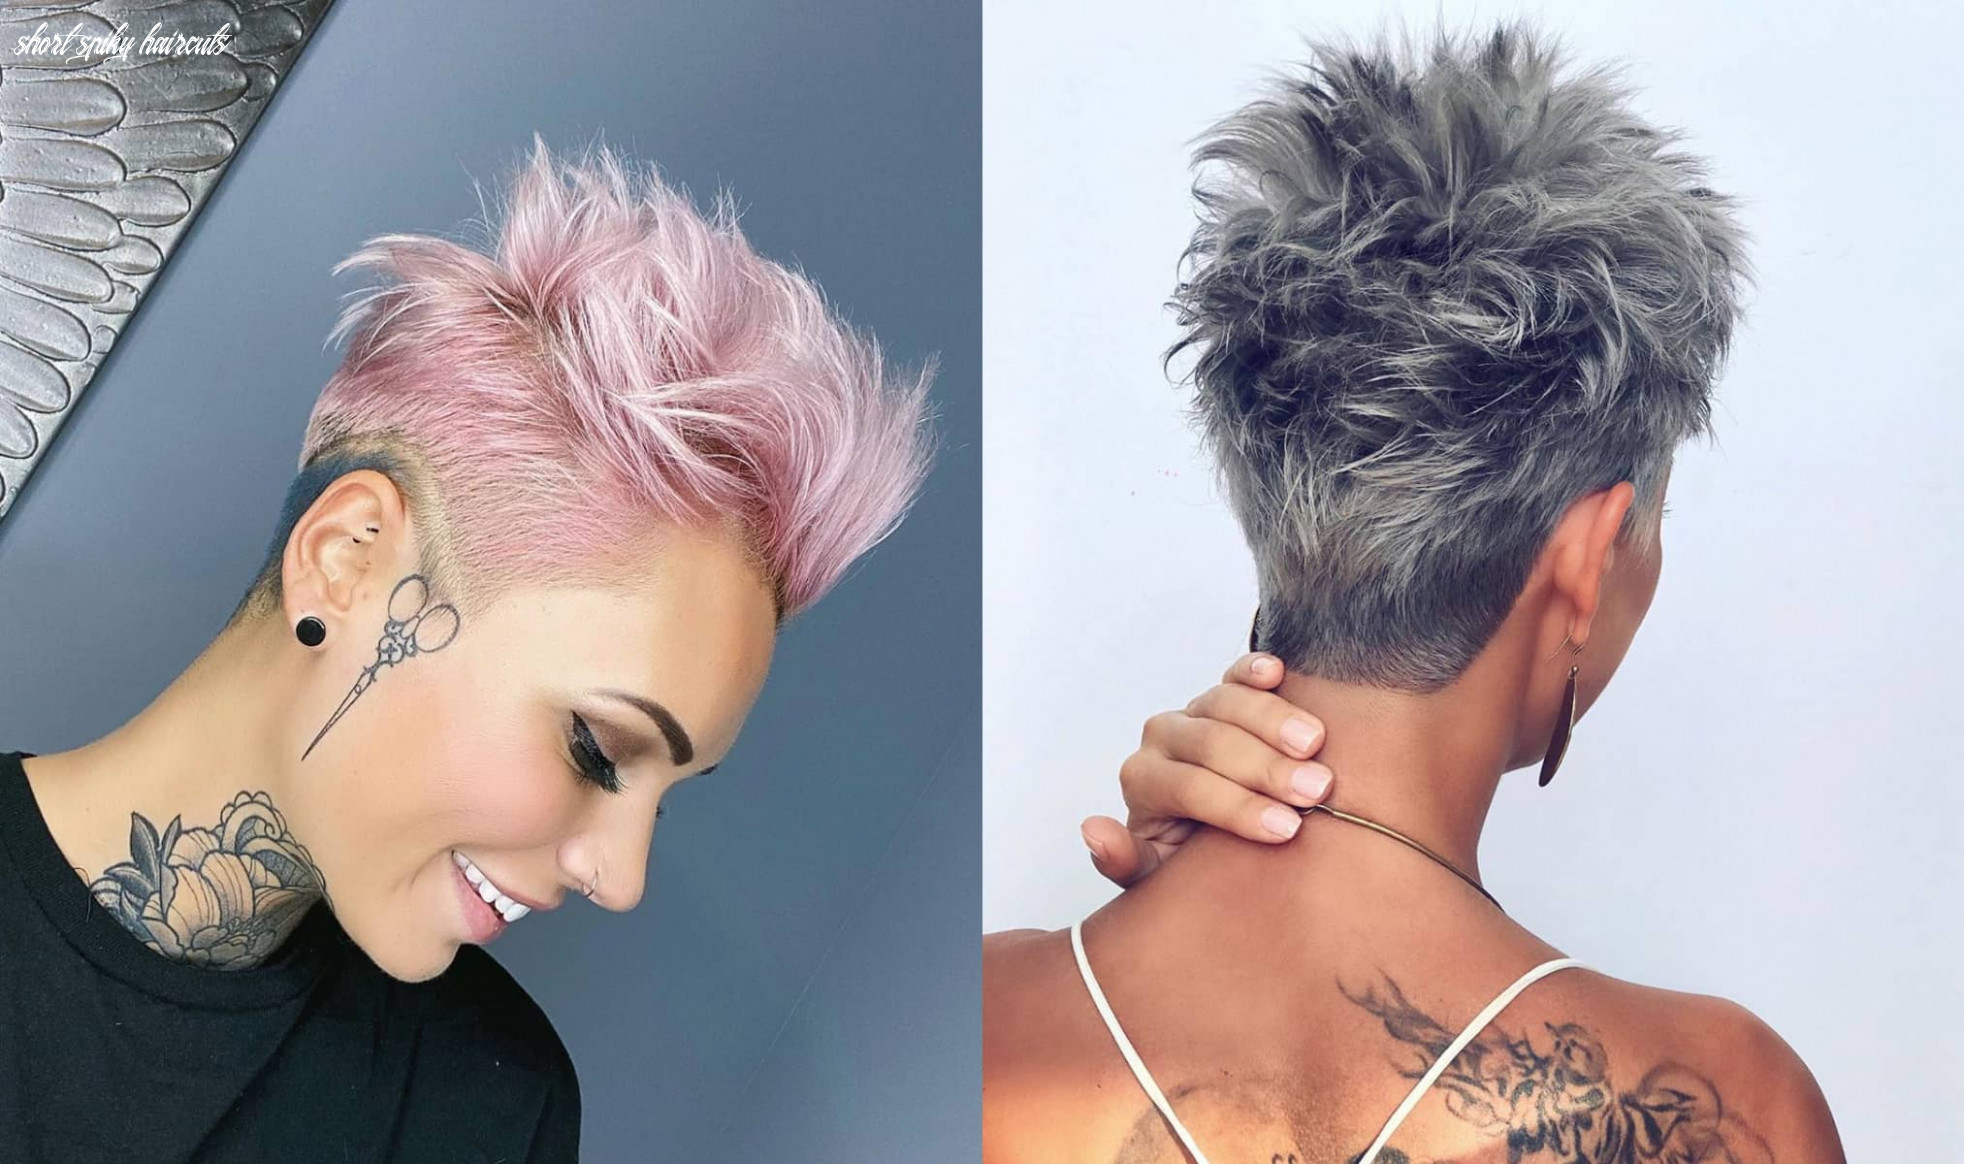 8 short spiky haircuts for women | stylesrant short spiky haircuts